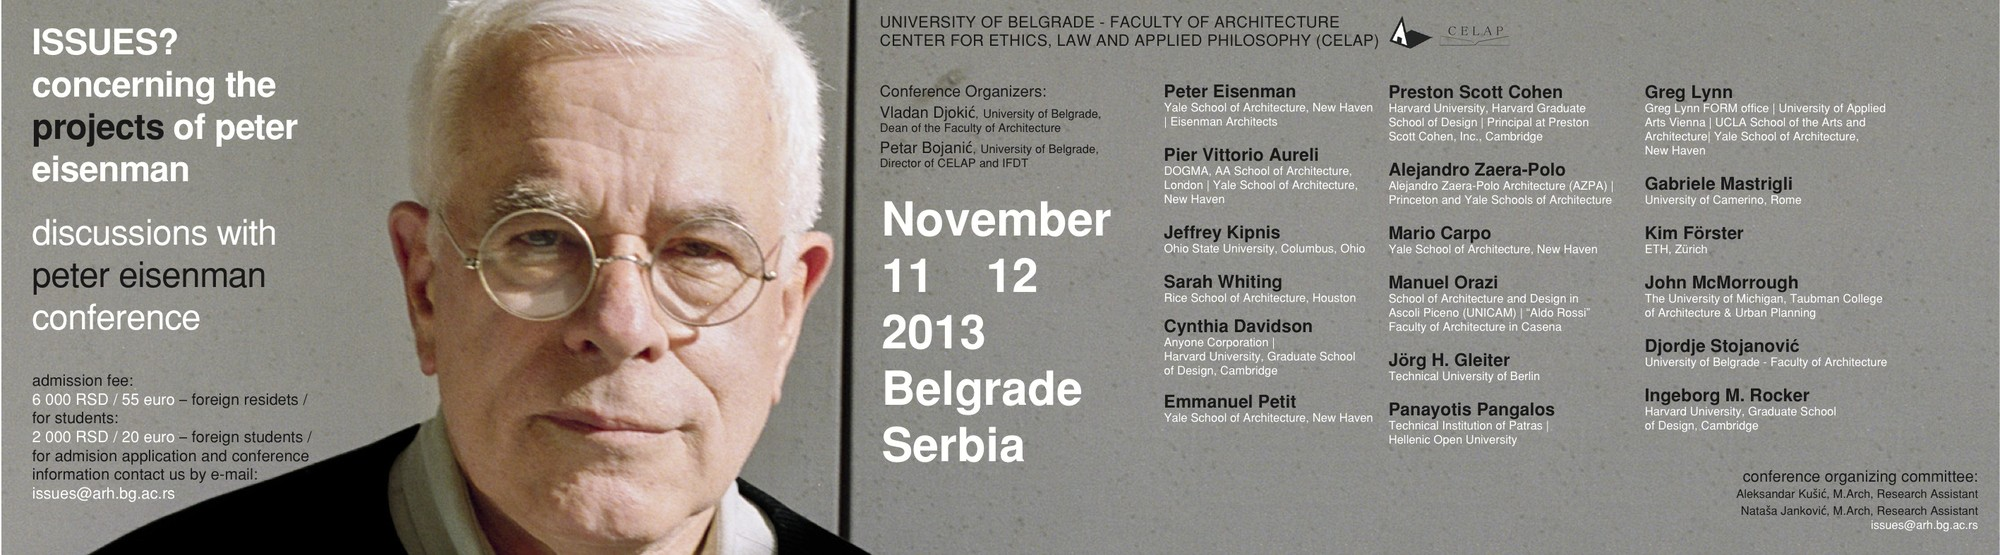 ISSUES? Concerning the projects of Peter Eisenman